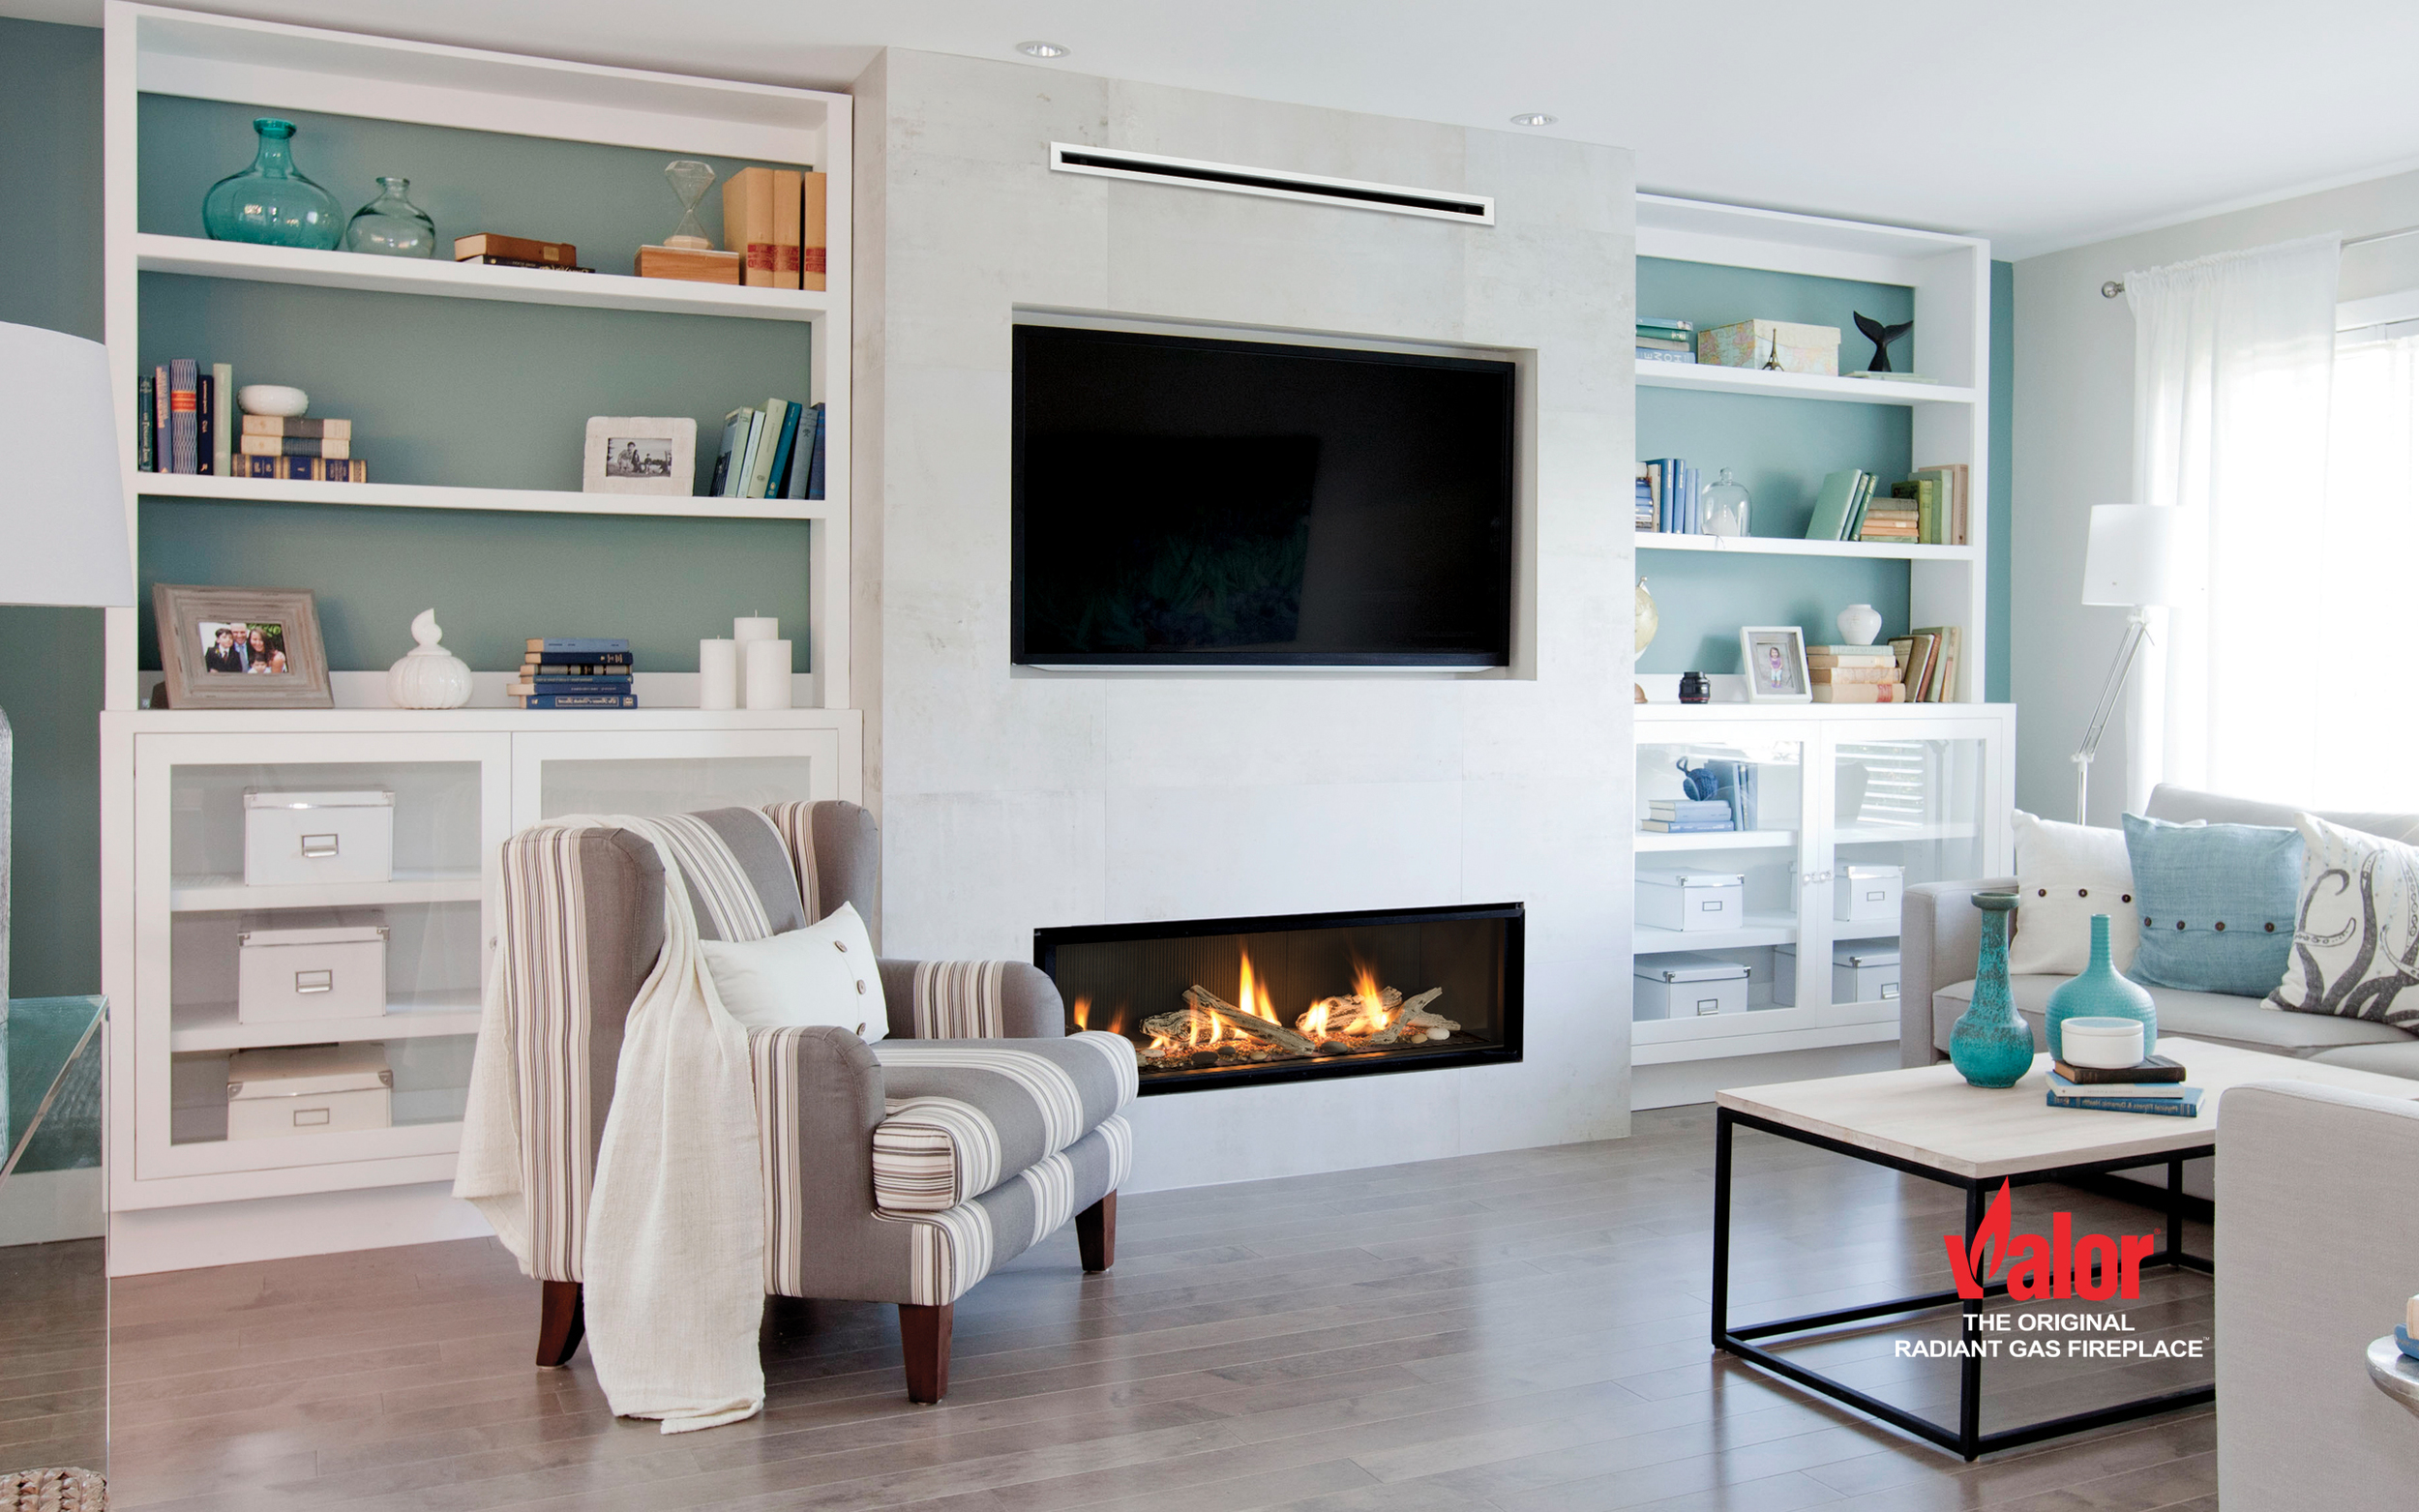 Valor Contemporary Gas Fireplaces Valley Fire Place Inc